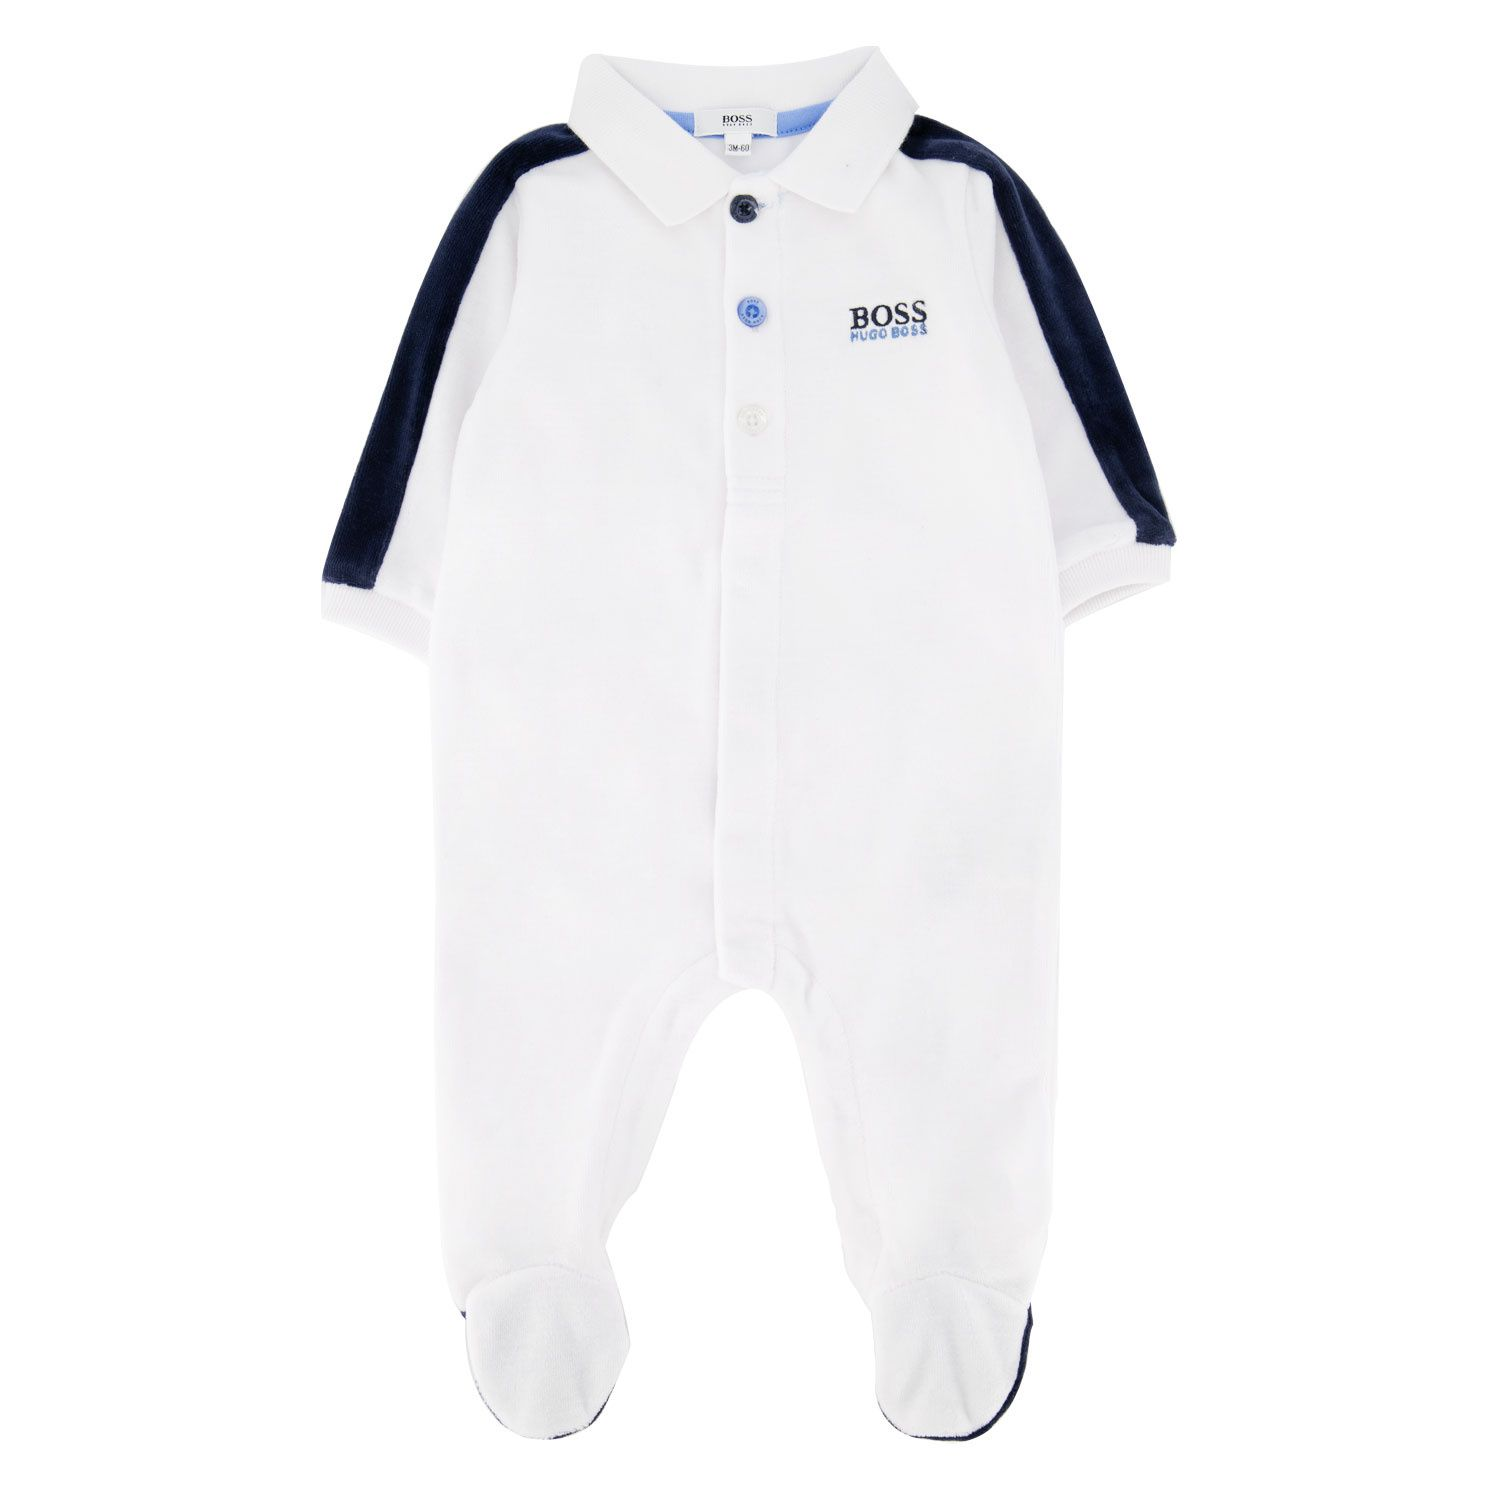 Picture of Boss J97162 baby playsuit white